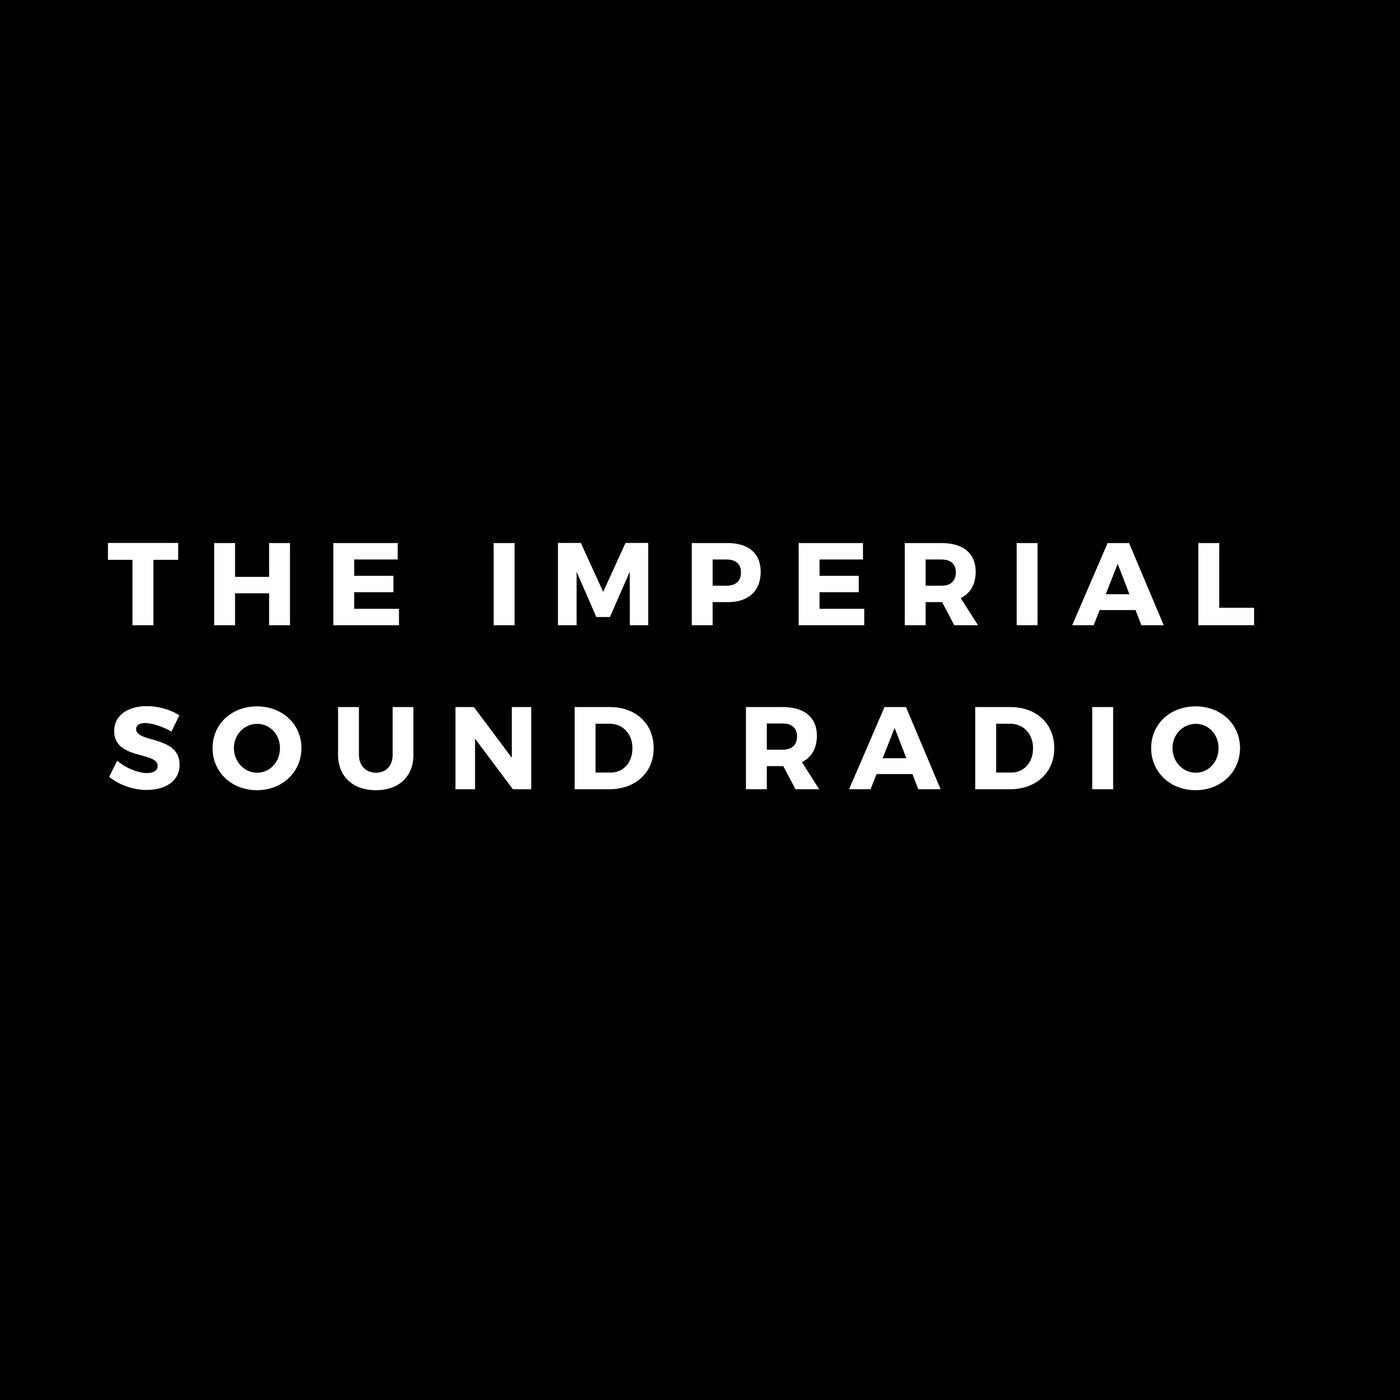 The Imperial Sound Radio